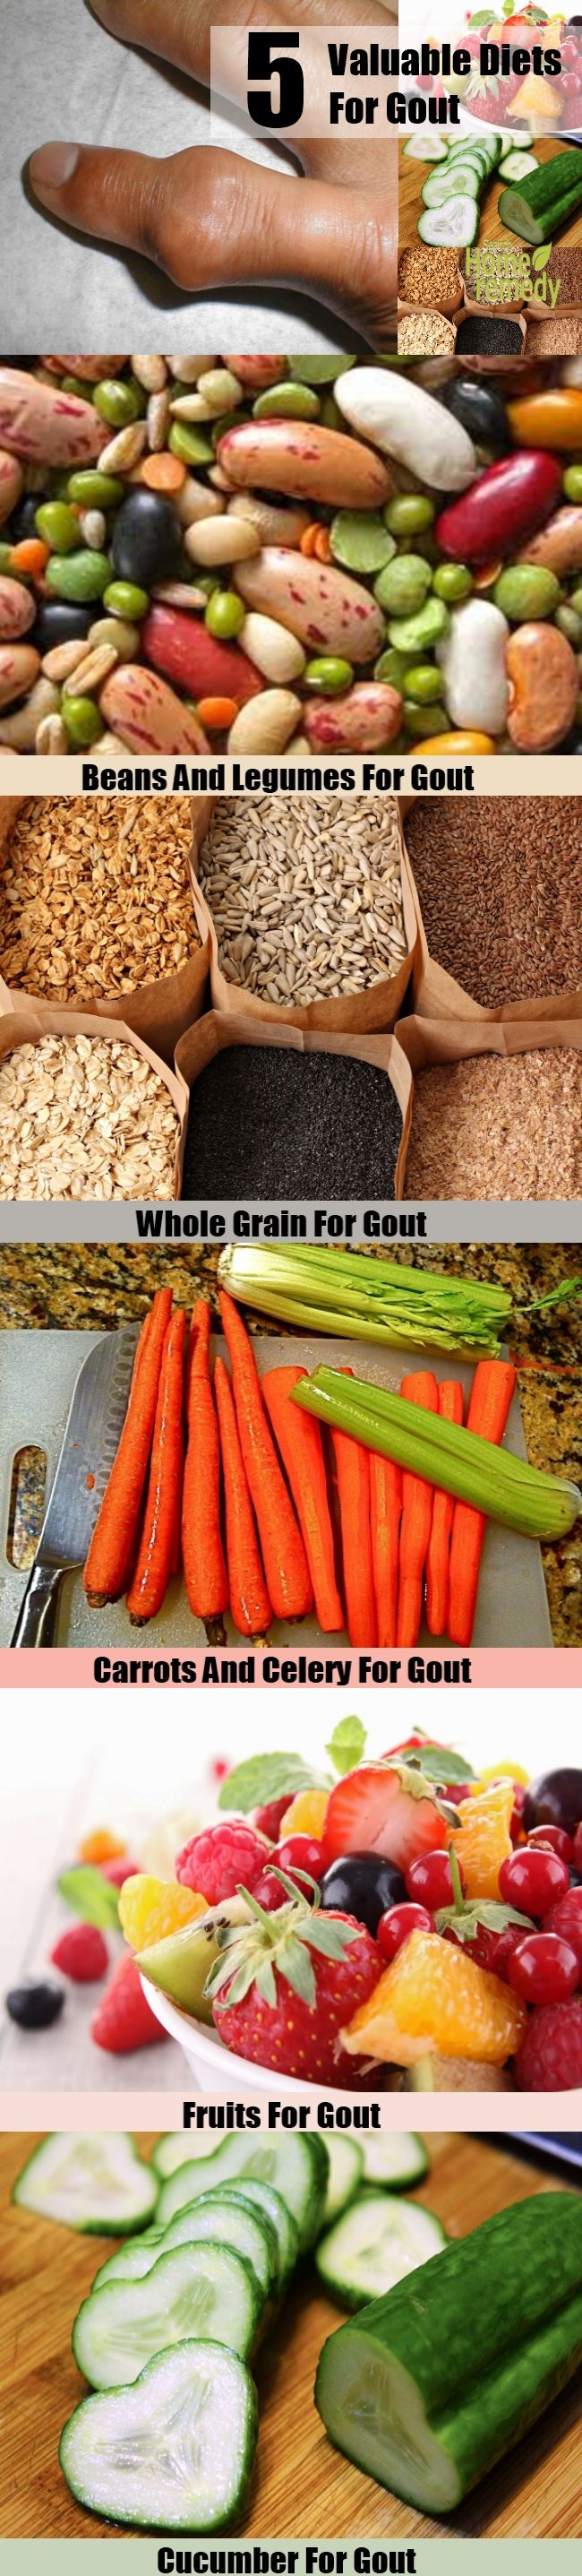 what food to avoid for gout sufferers lowering uric acid through diet gout pain under foot